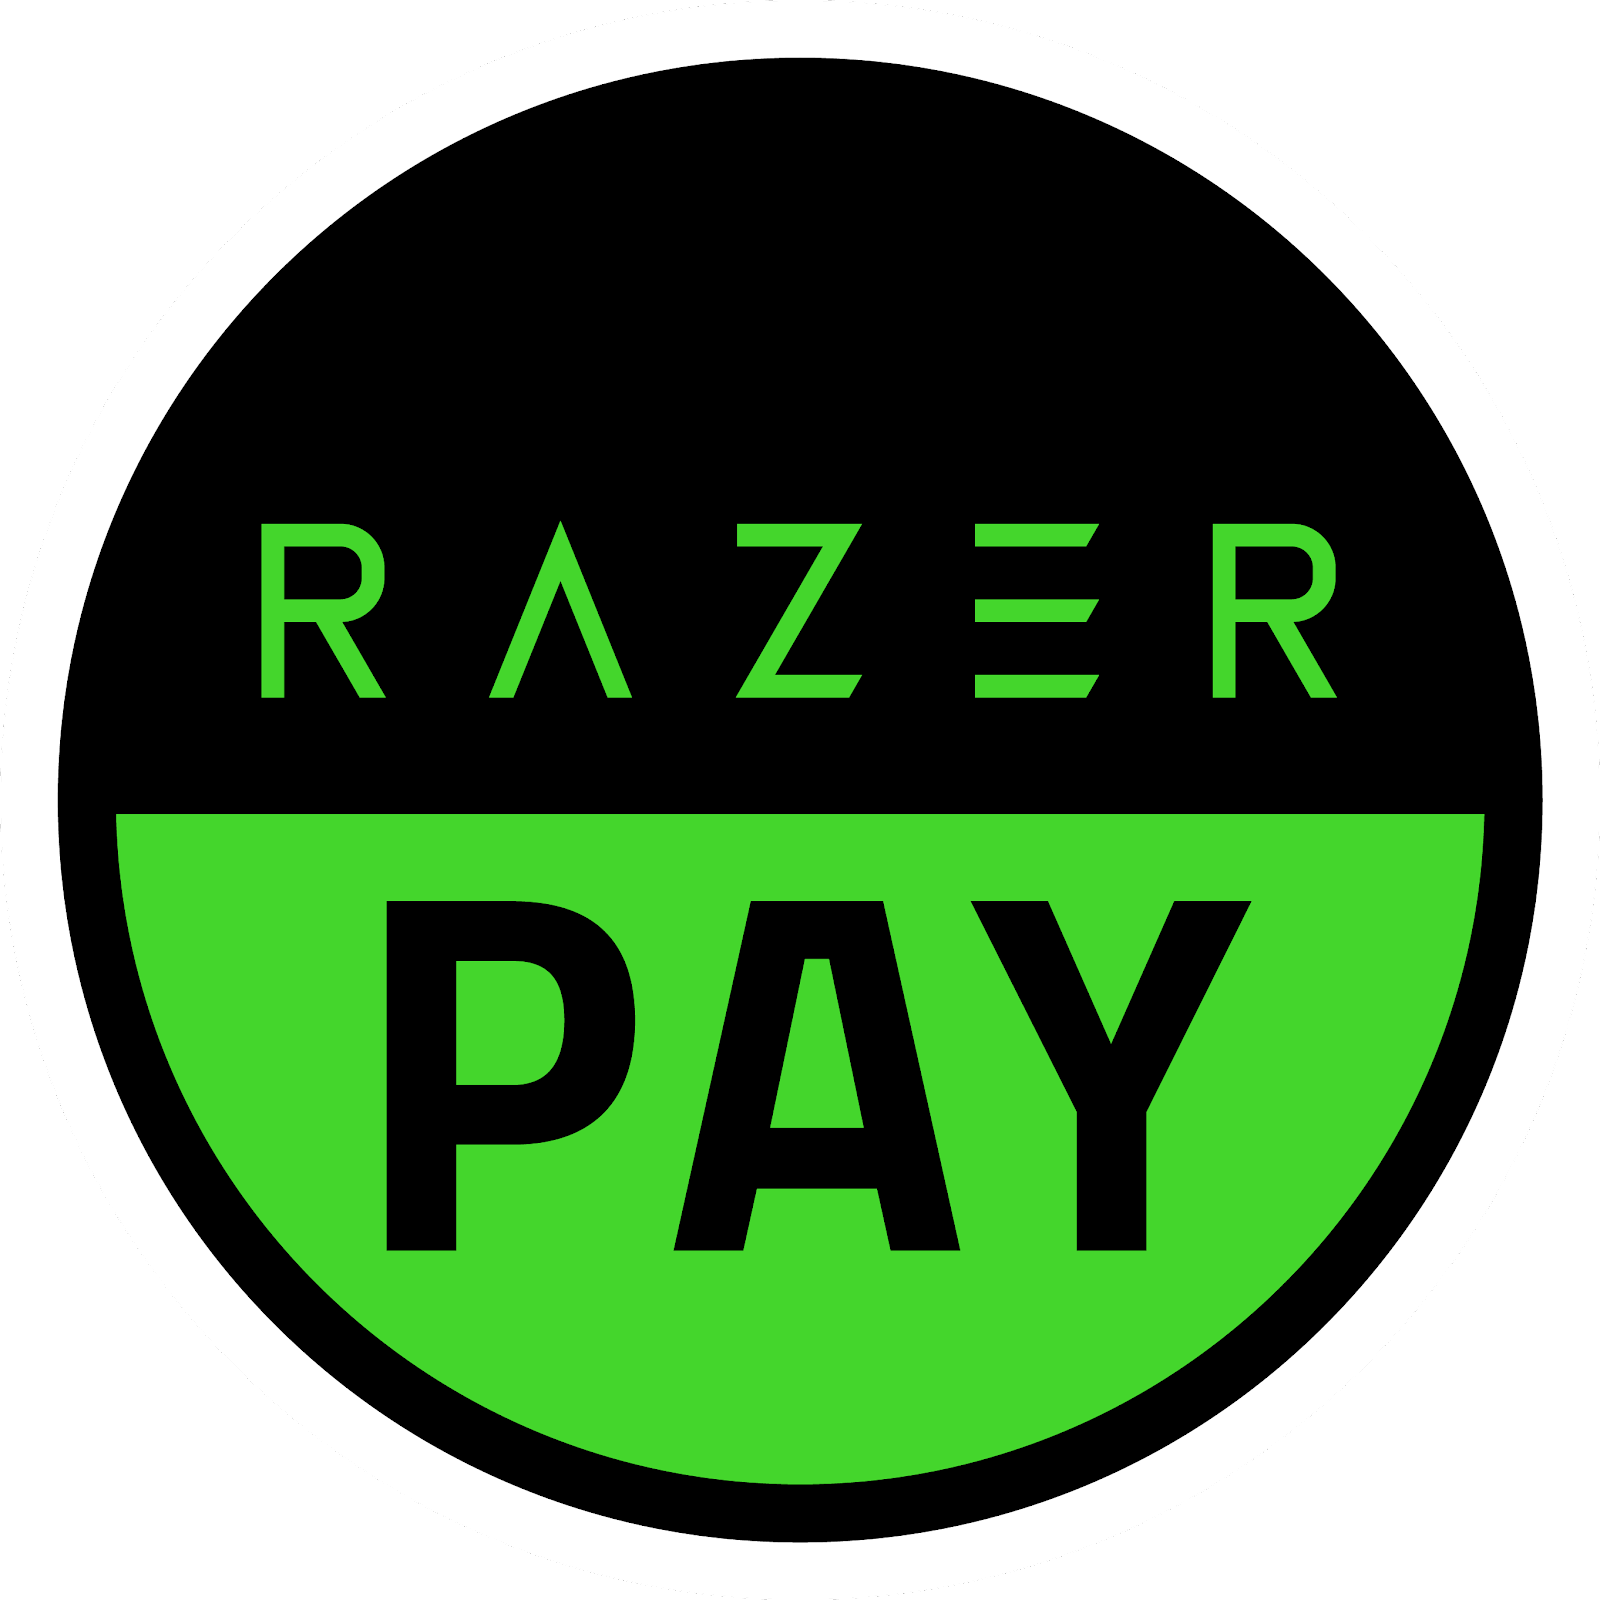 Razer pay e-wallet logo